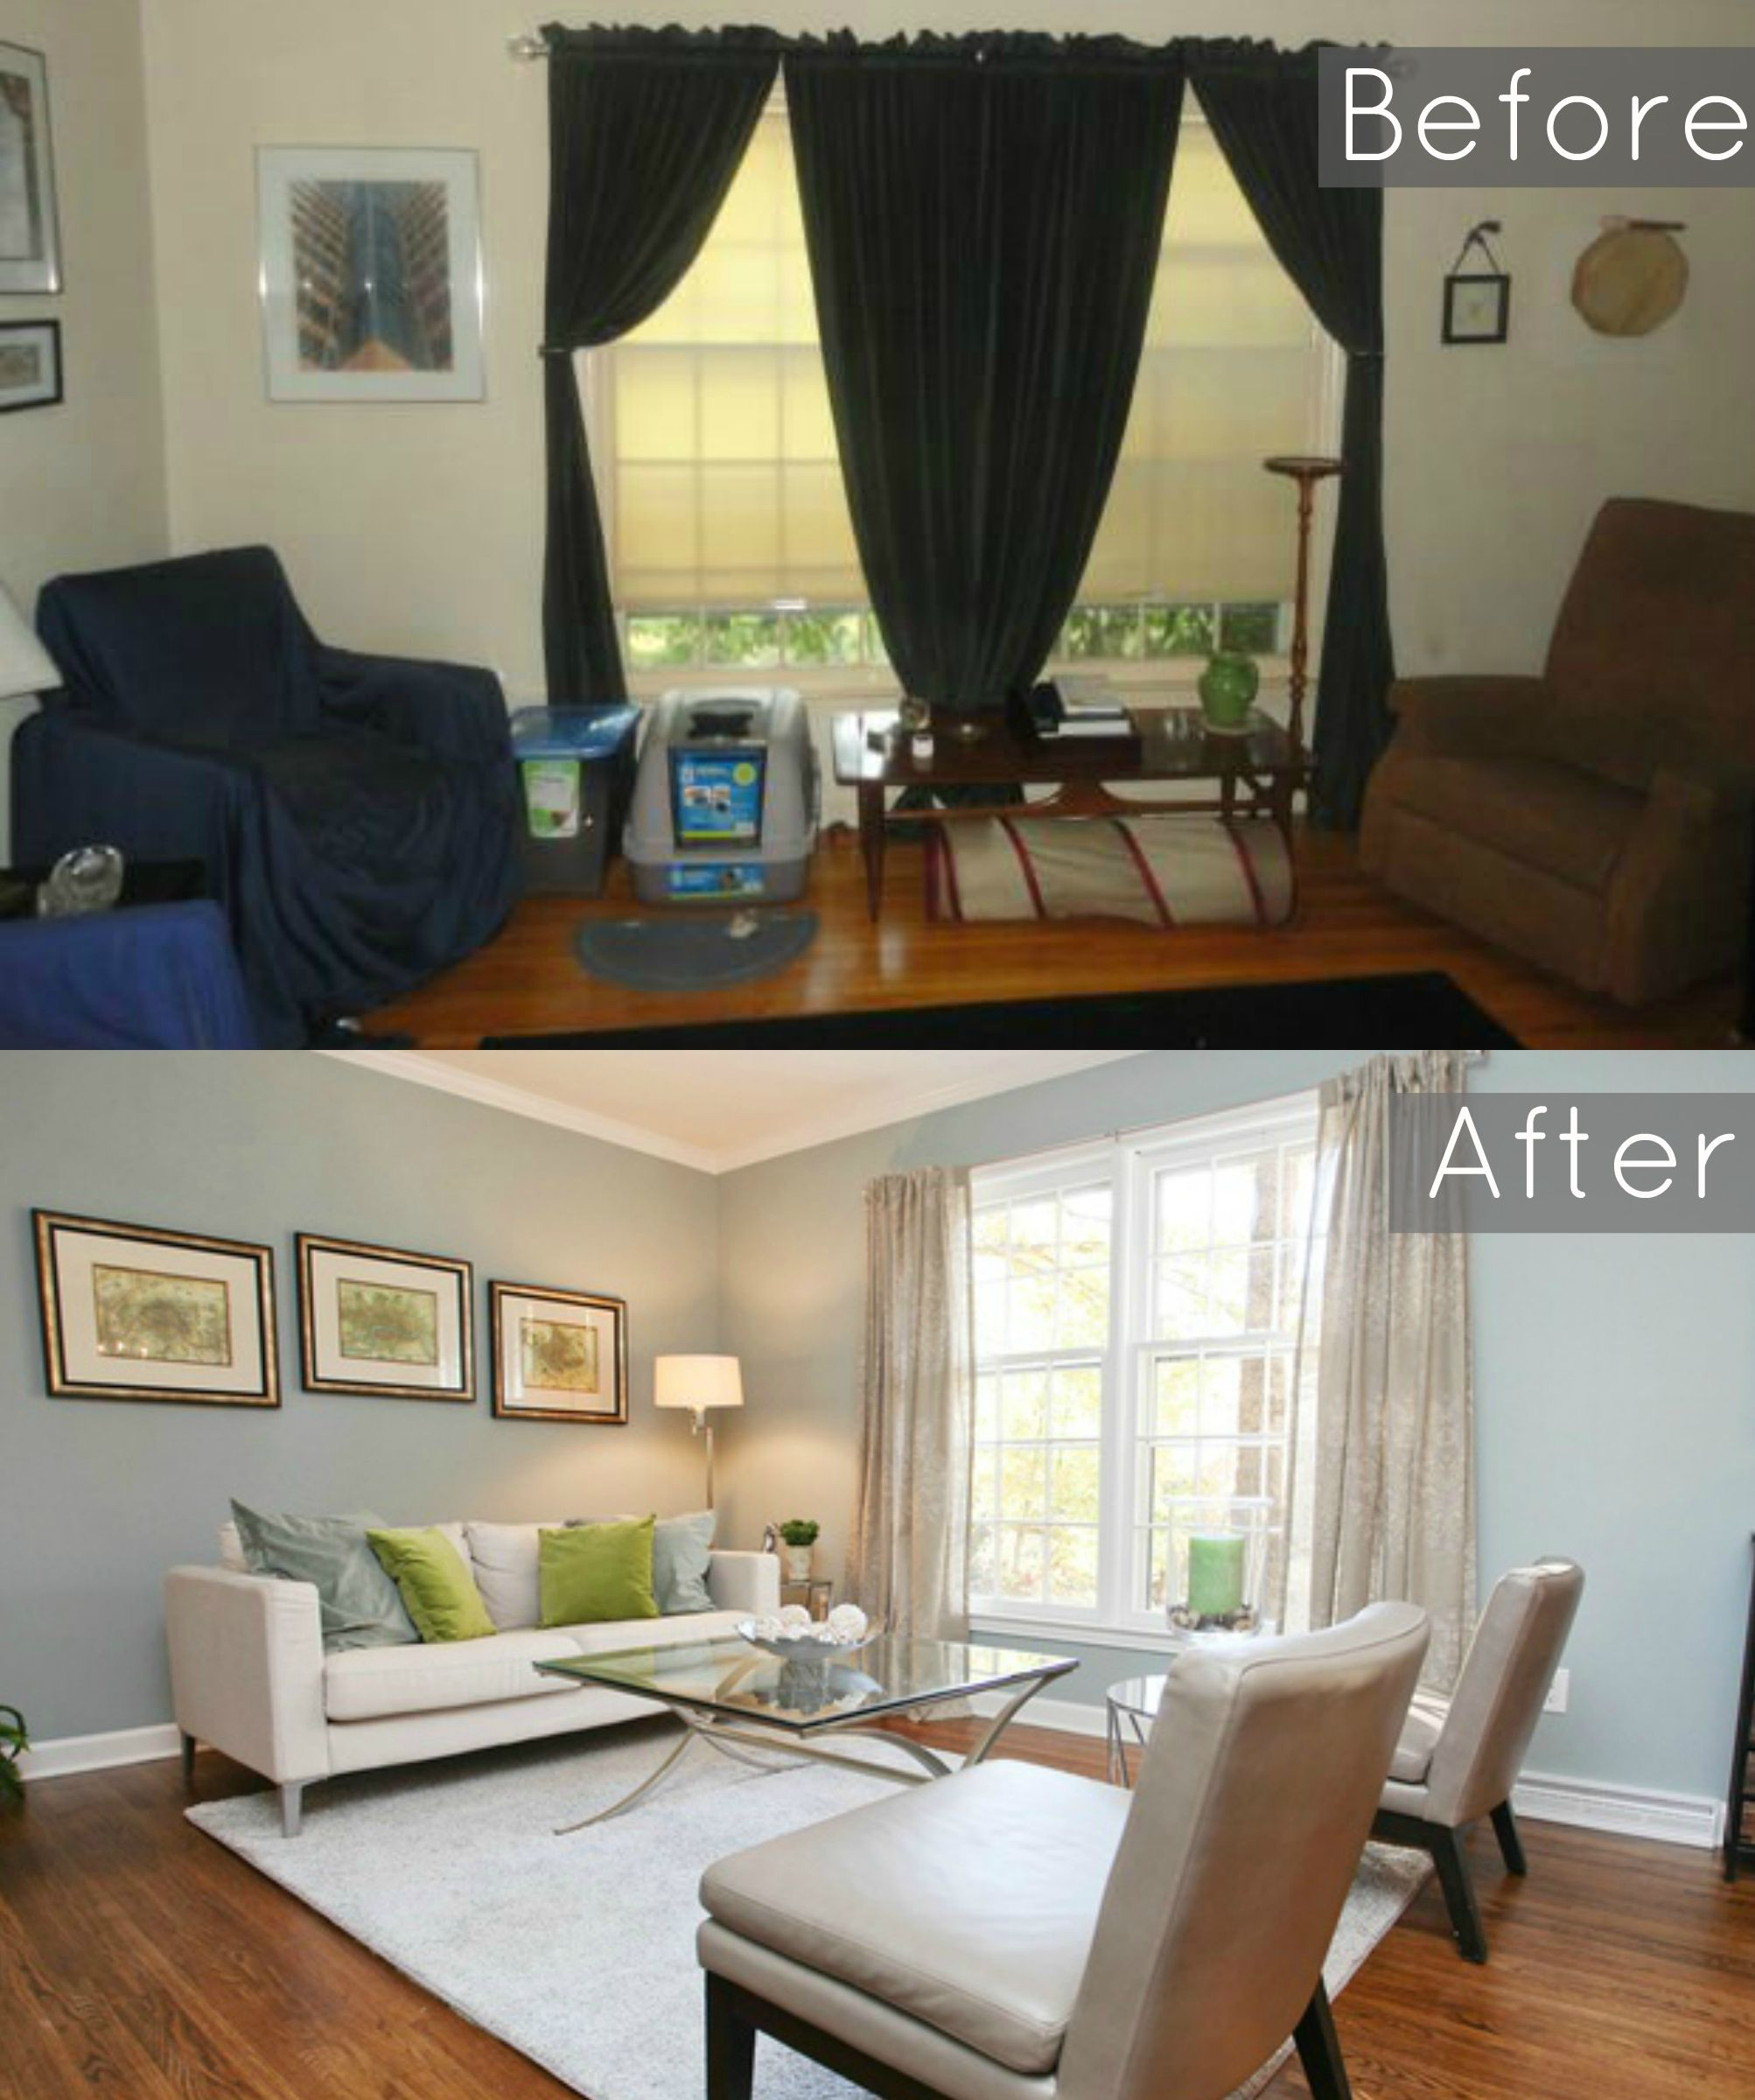 Before and After of our ugly 1960s split level remodel